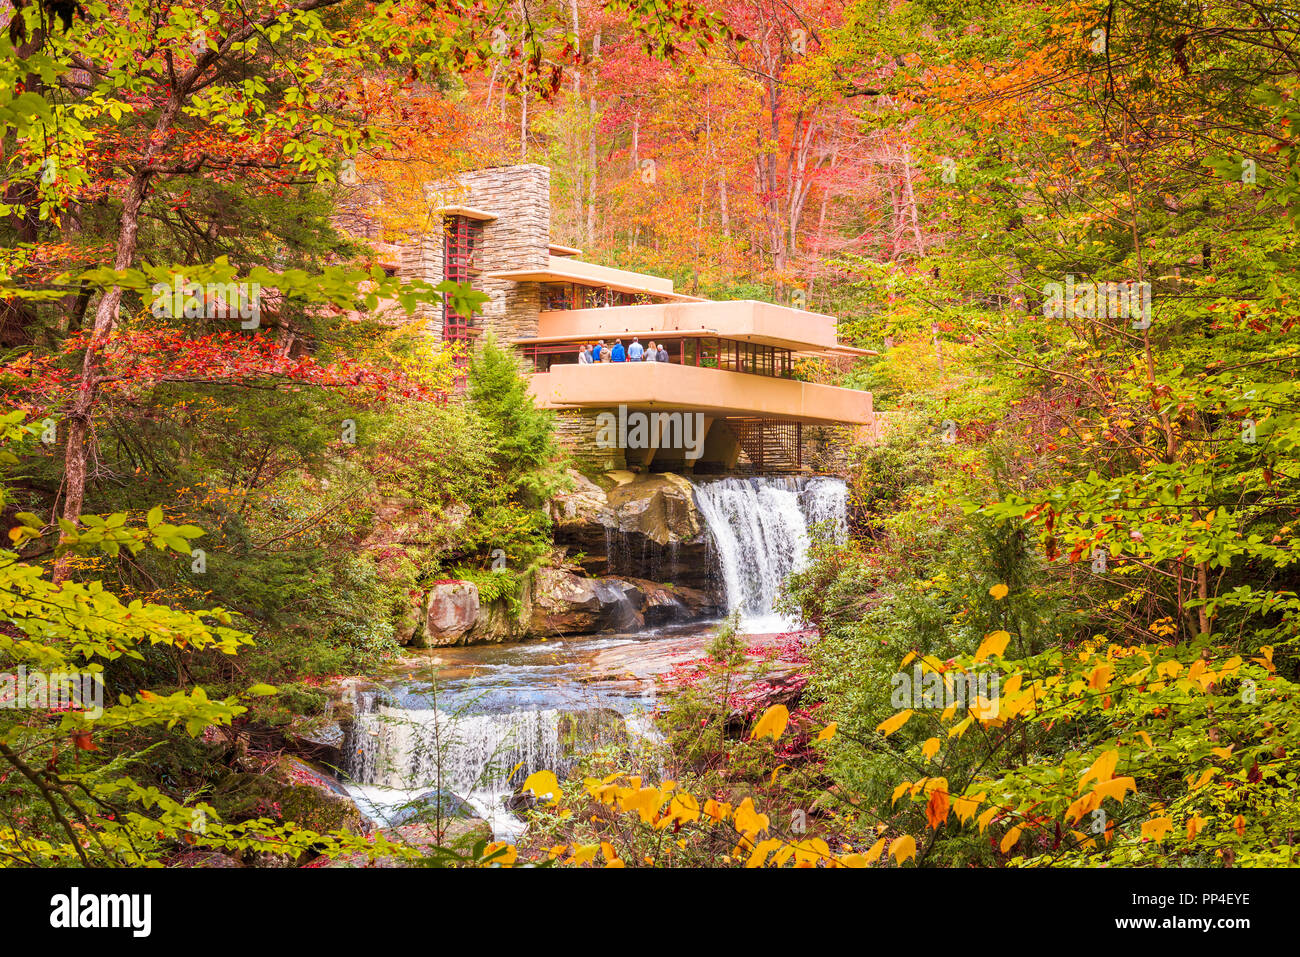 MILL RUN, PENNSYLVANIA, USA - OCTOBER 24, 2017: Fallingwater over Bear Run waterfall in the Laurel Highlands of the Allegheny Mountains. - Stock Image